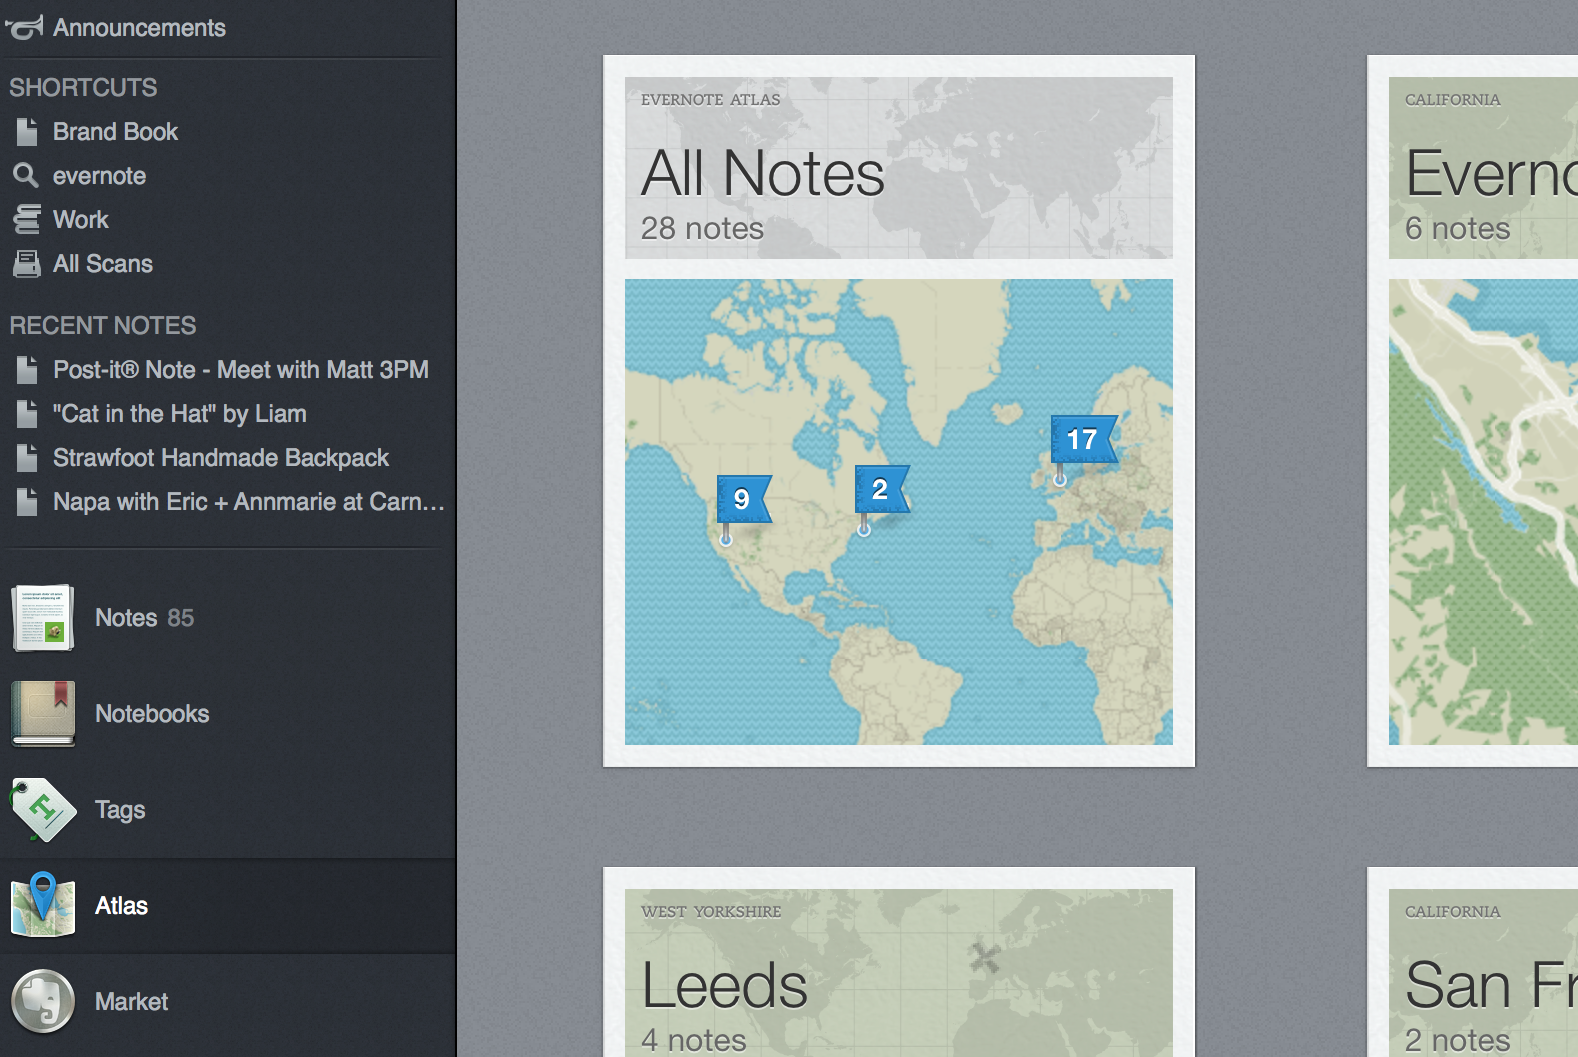 Notes organized by location